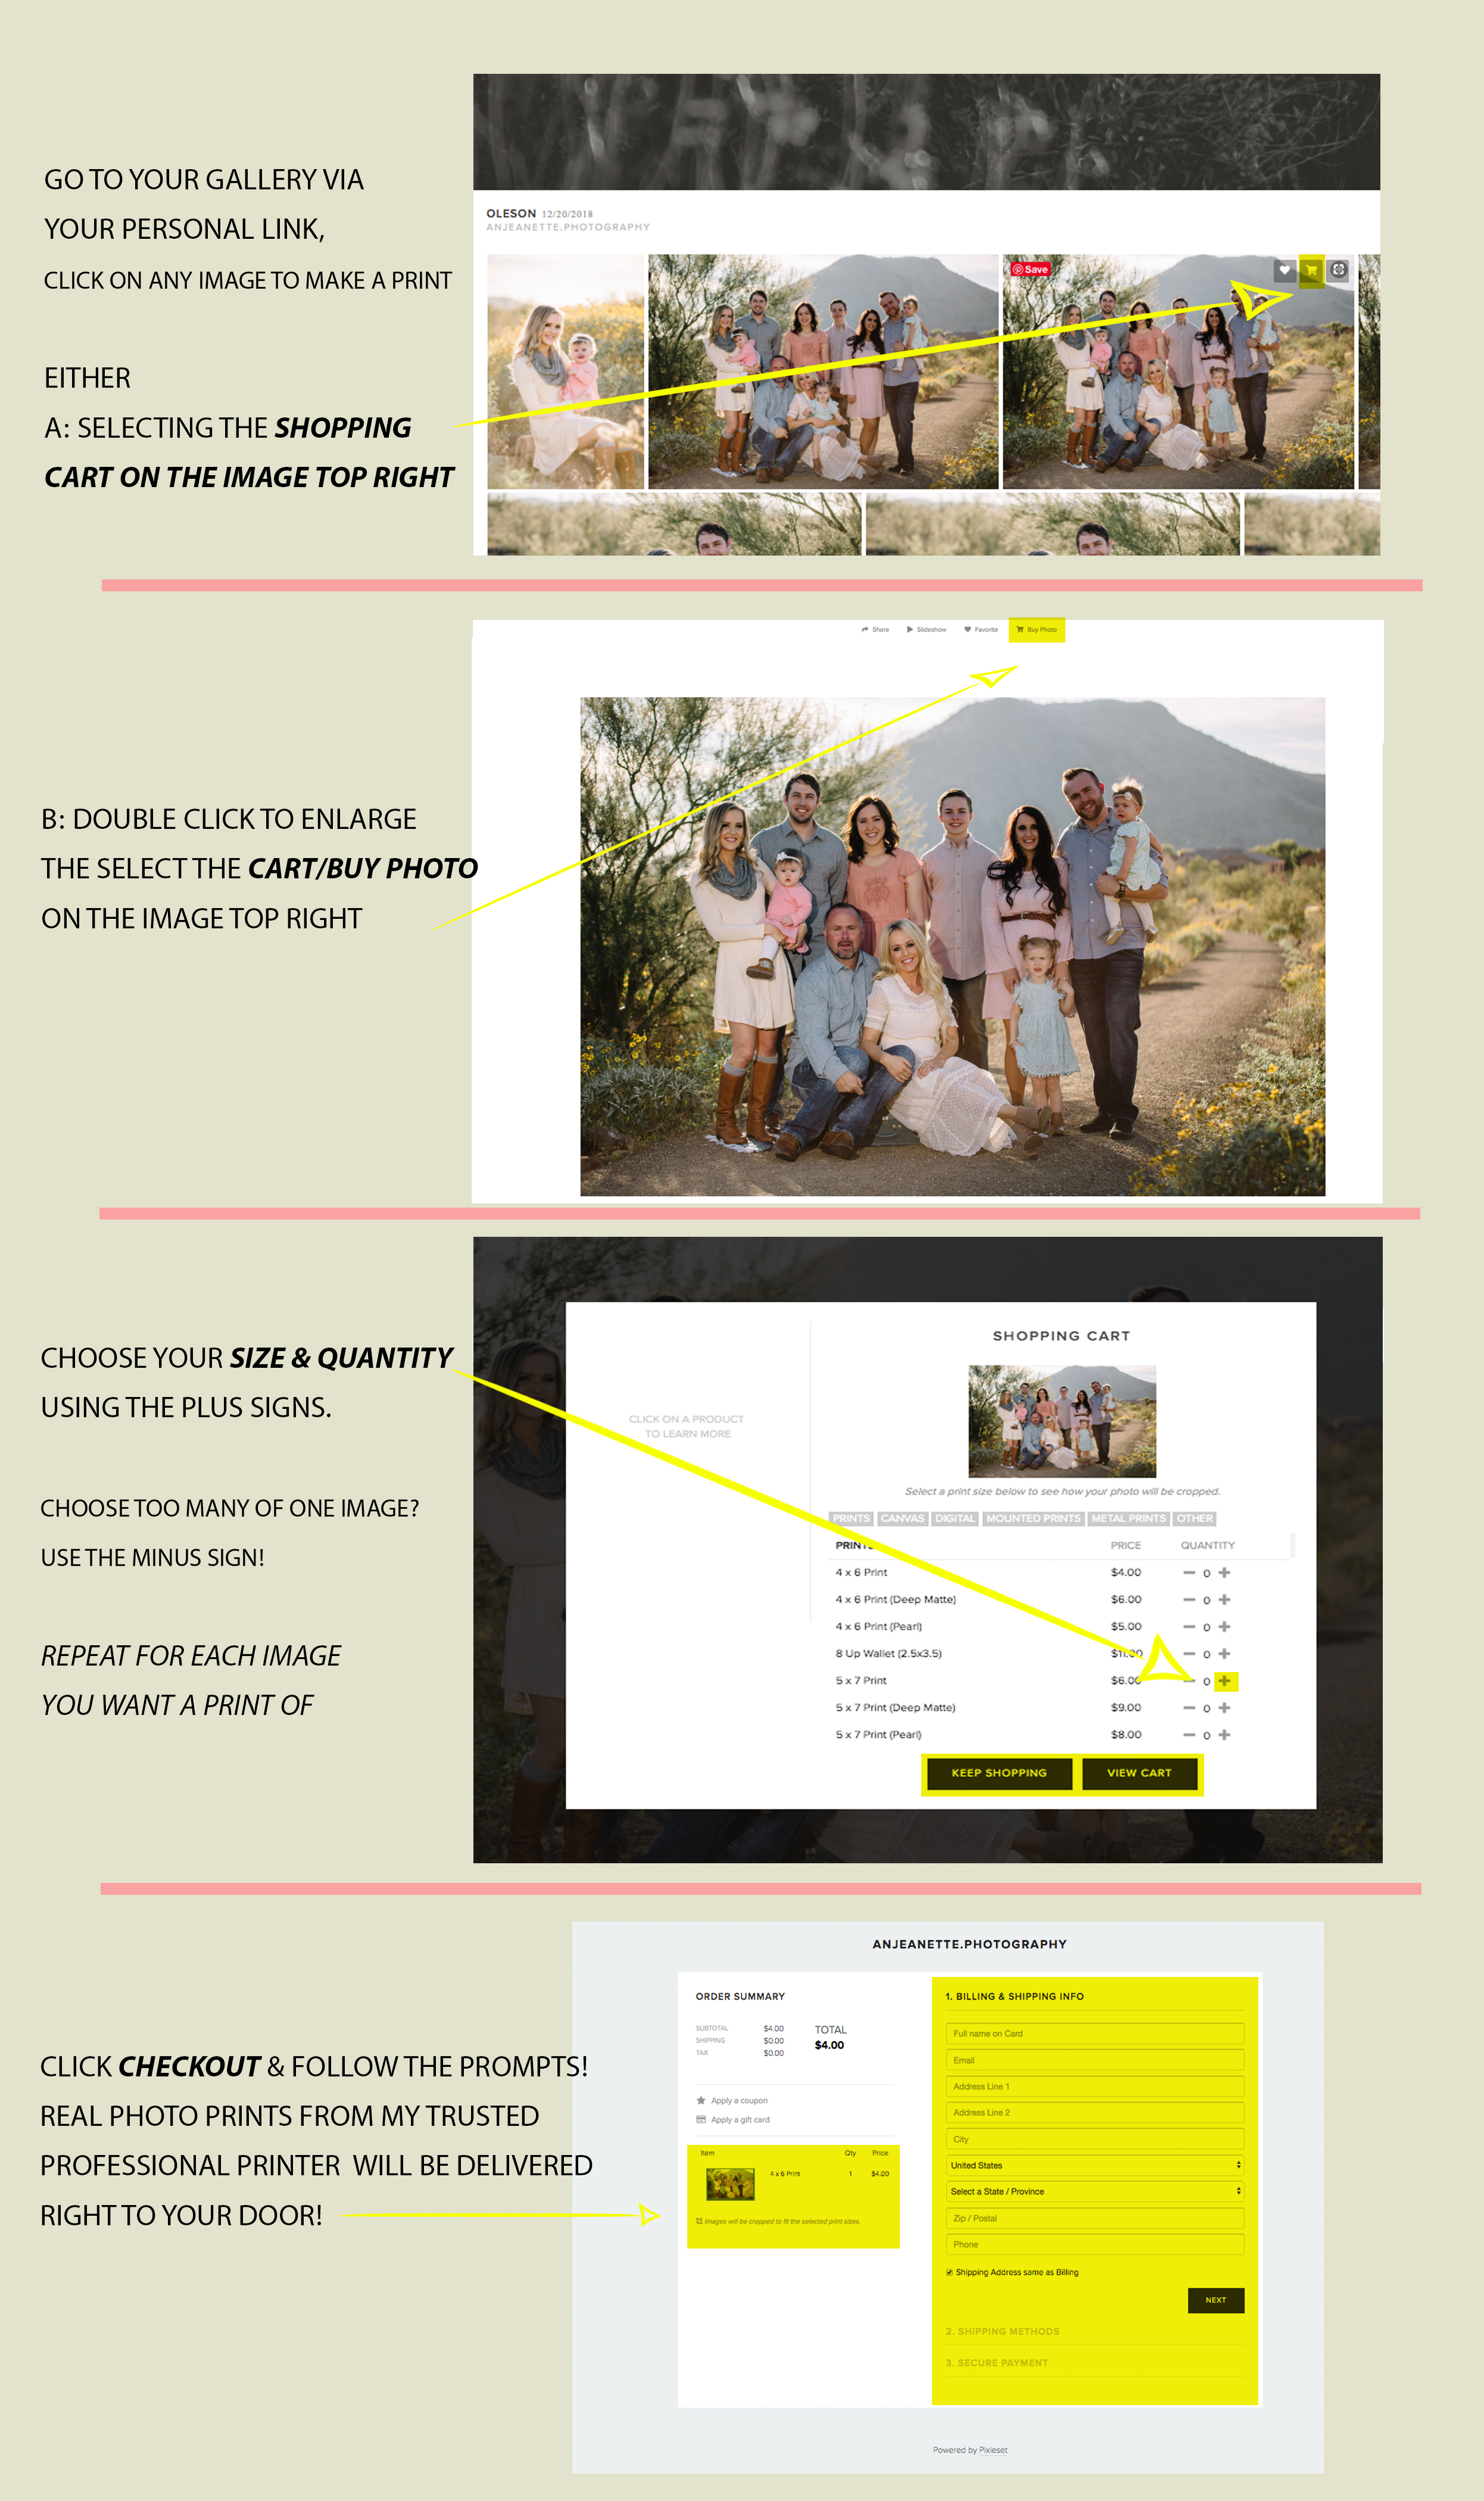 HOW TO ORDER PRINTS ON YOUR GALLERY.jpg